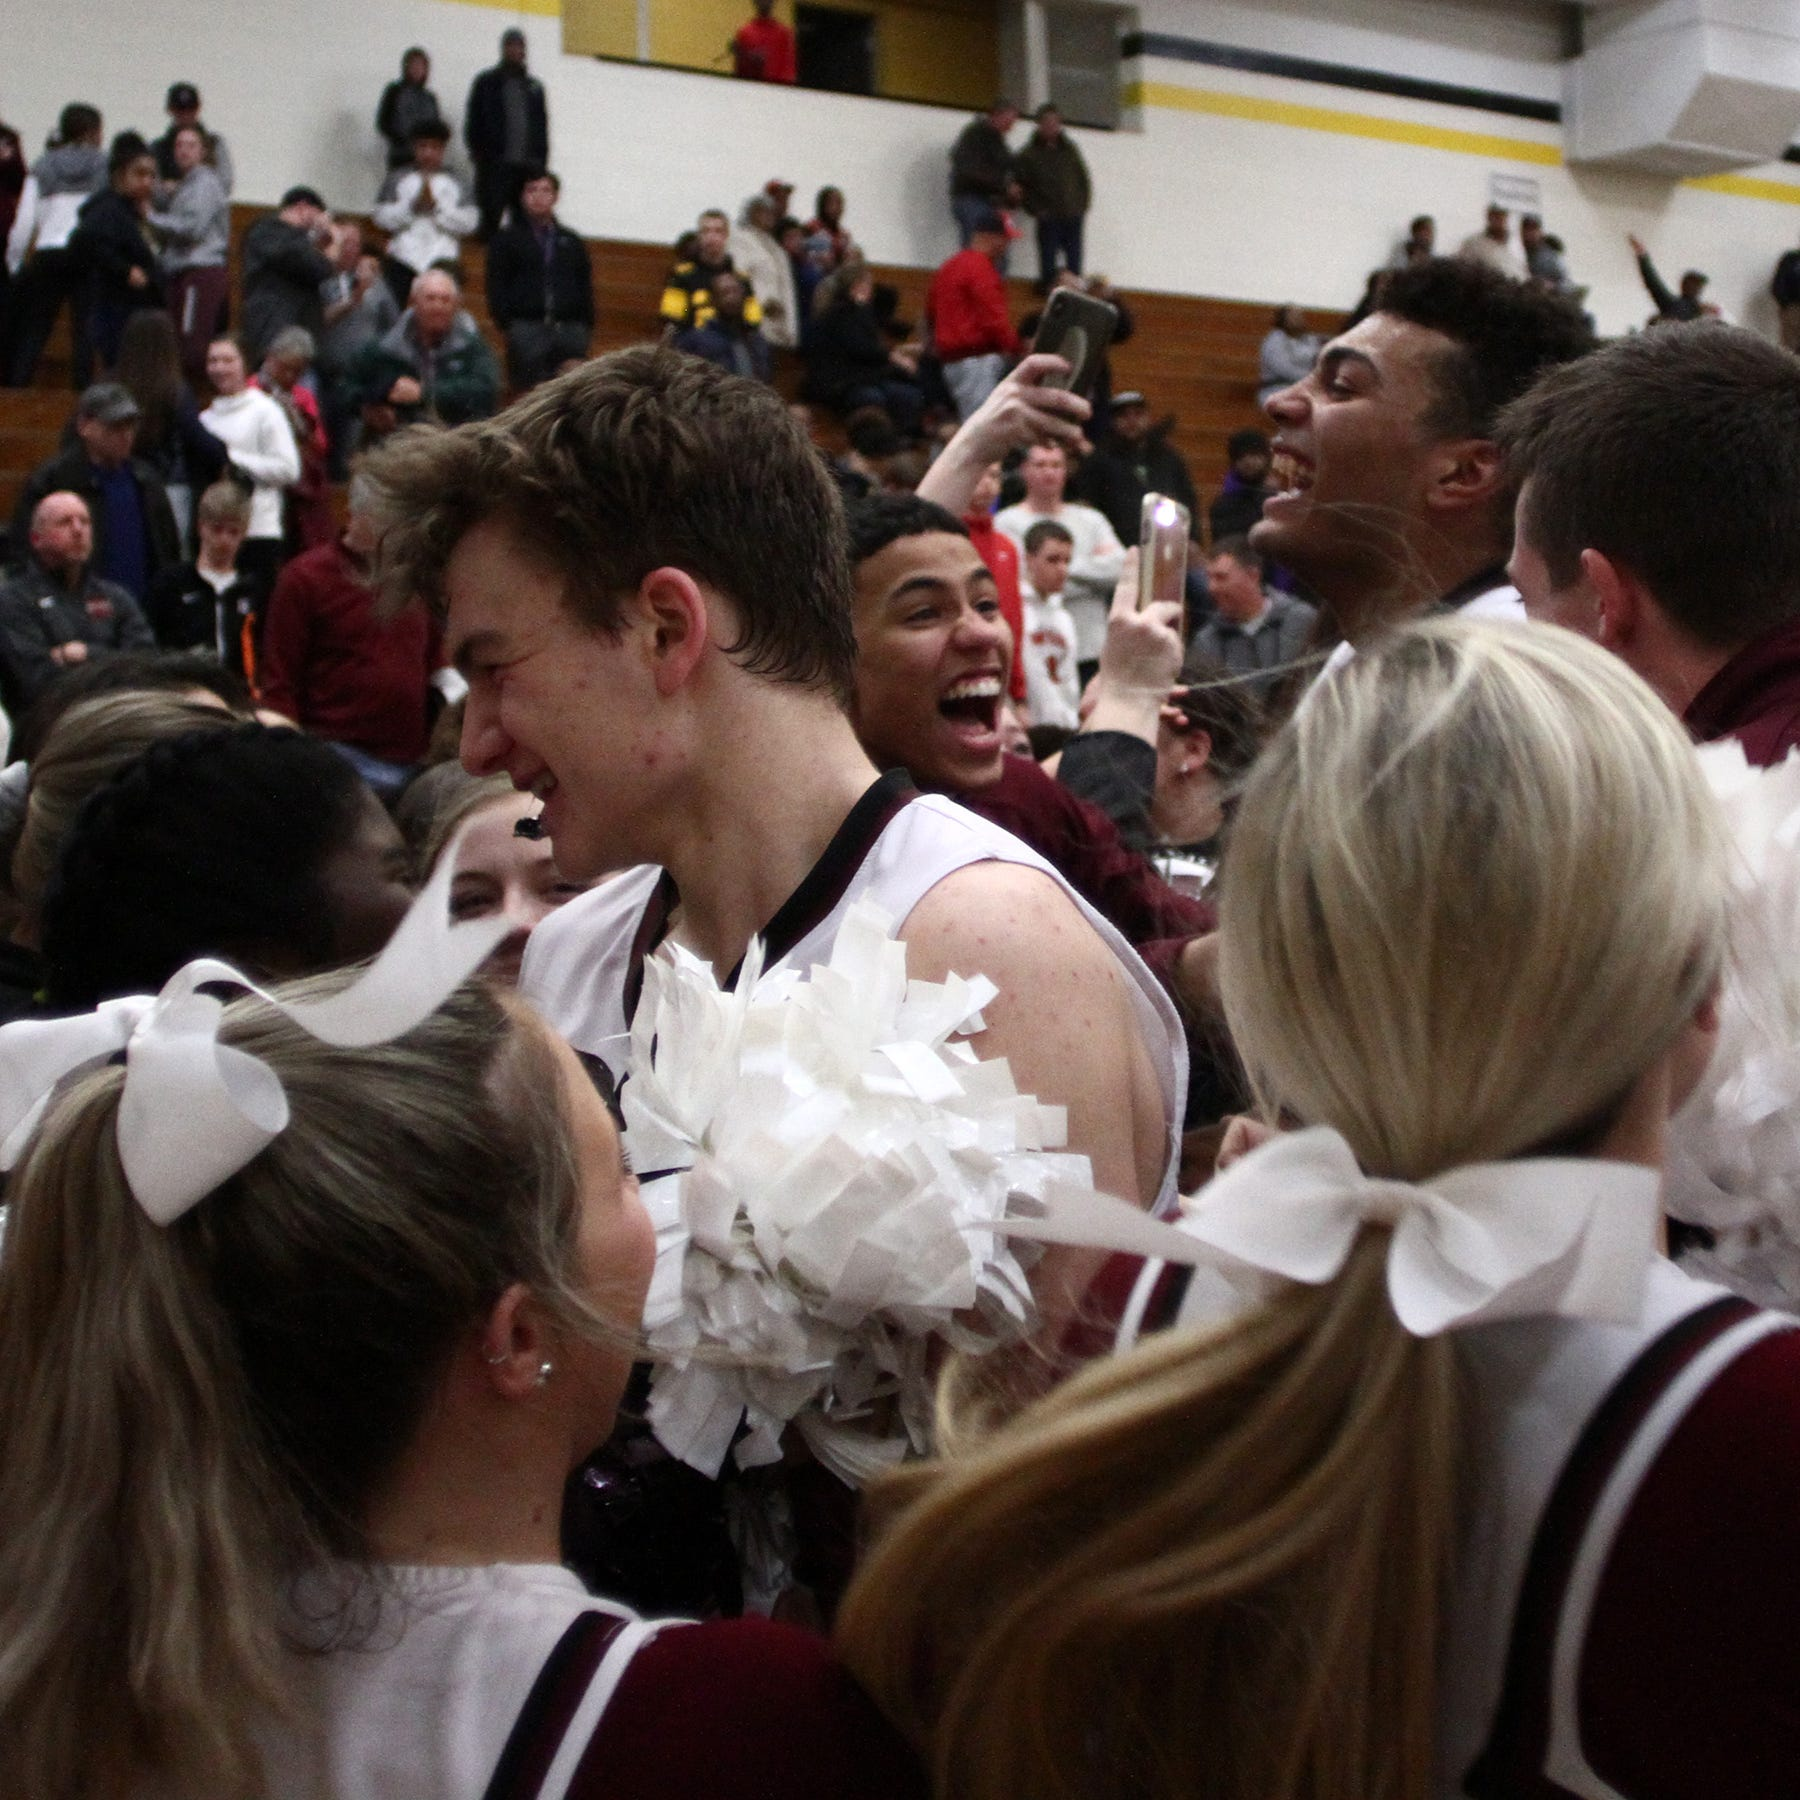 Newark boys basketball district final moved to 7:30